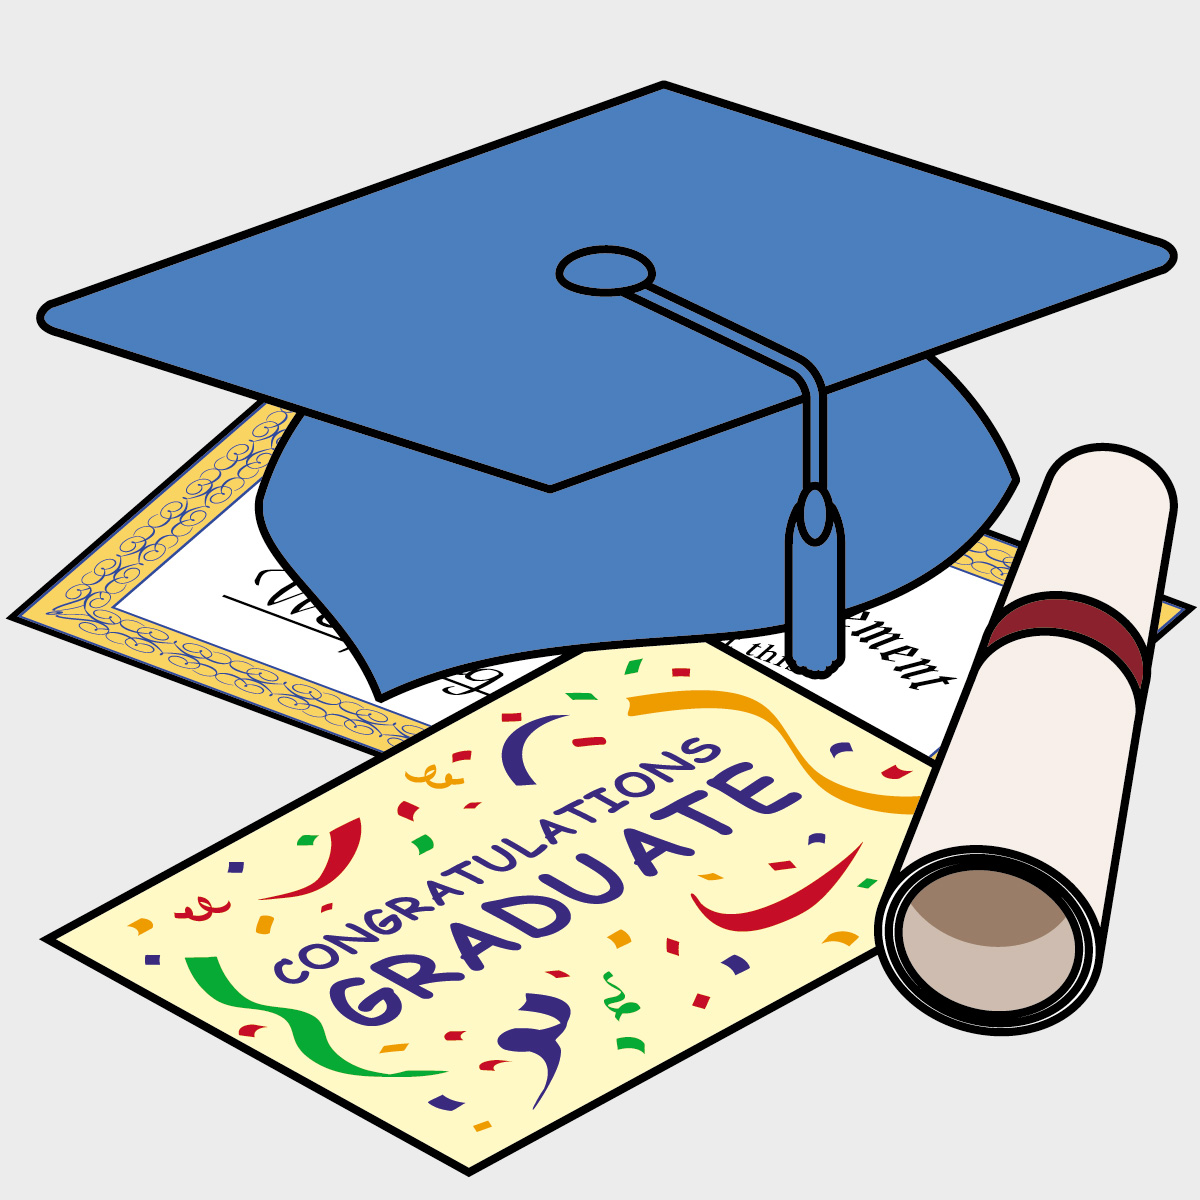 26 High School Graduation Clip Art Free -26 High School Graduation Clip Art Free Cliparts That You Can-3